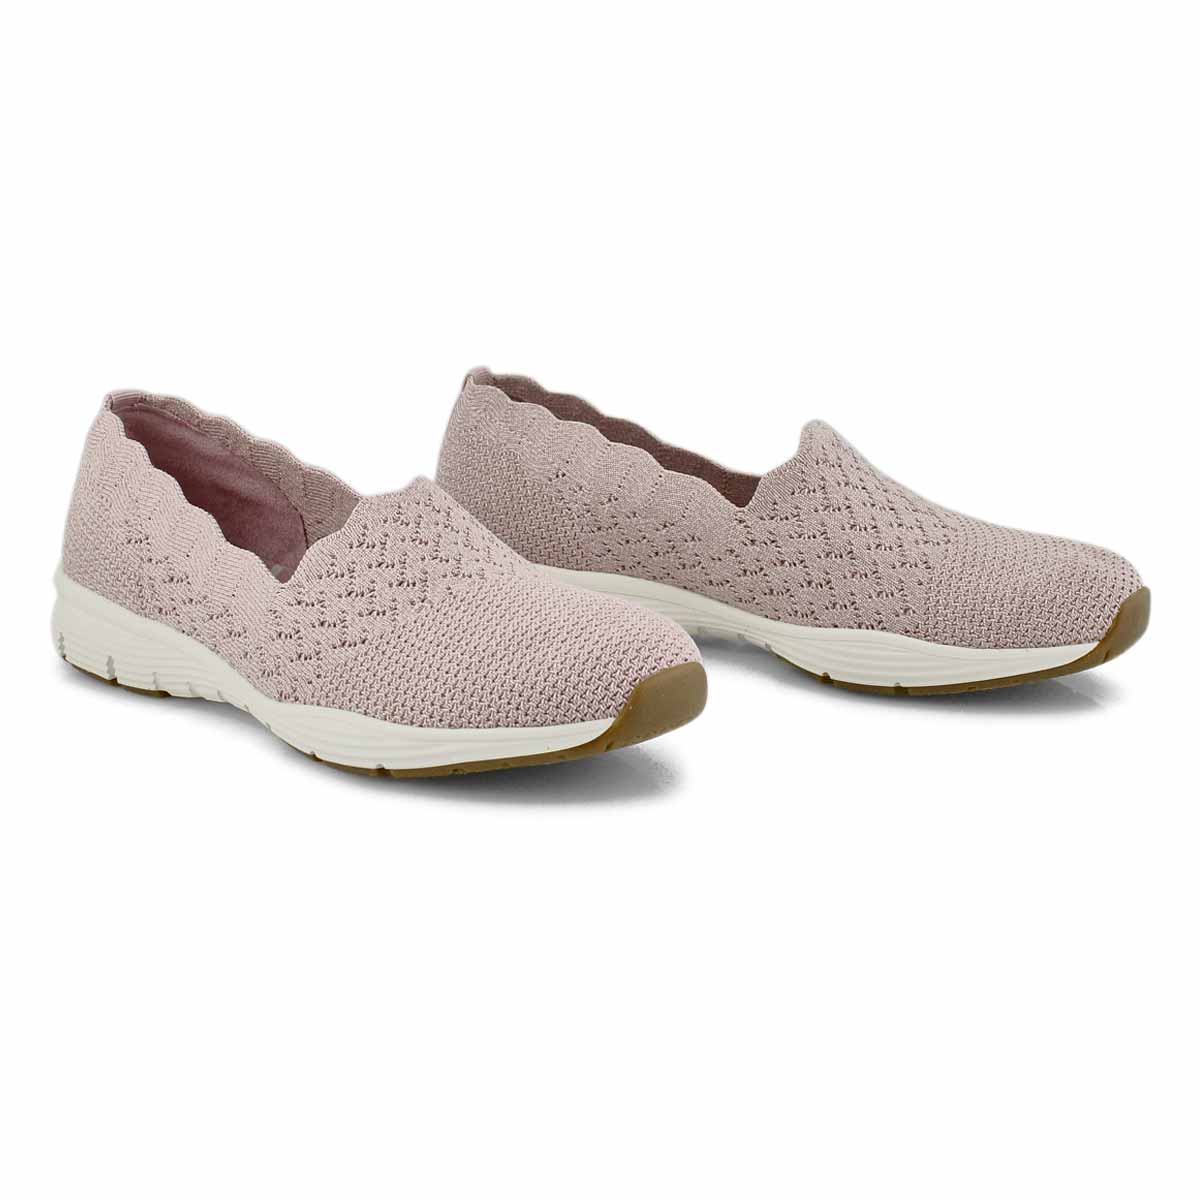 Lds Seager Stat Shoe - Rose